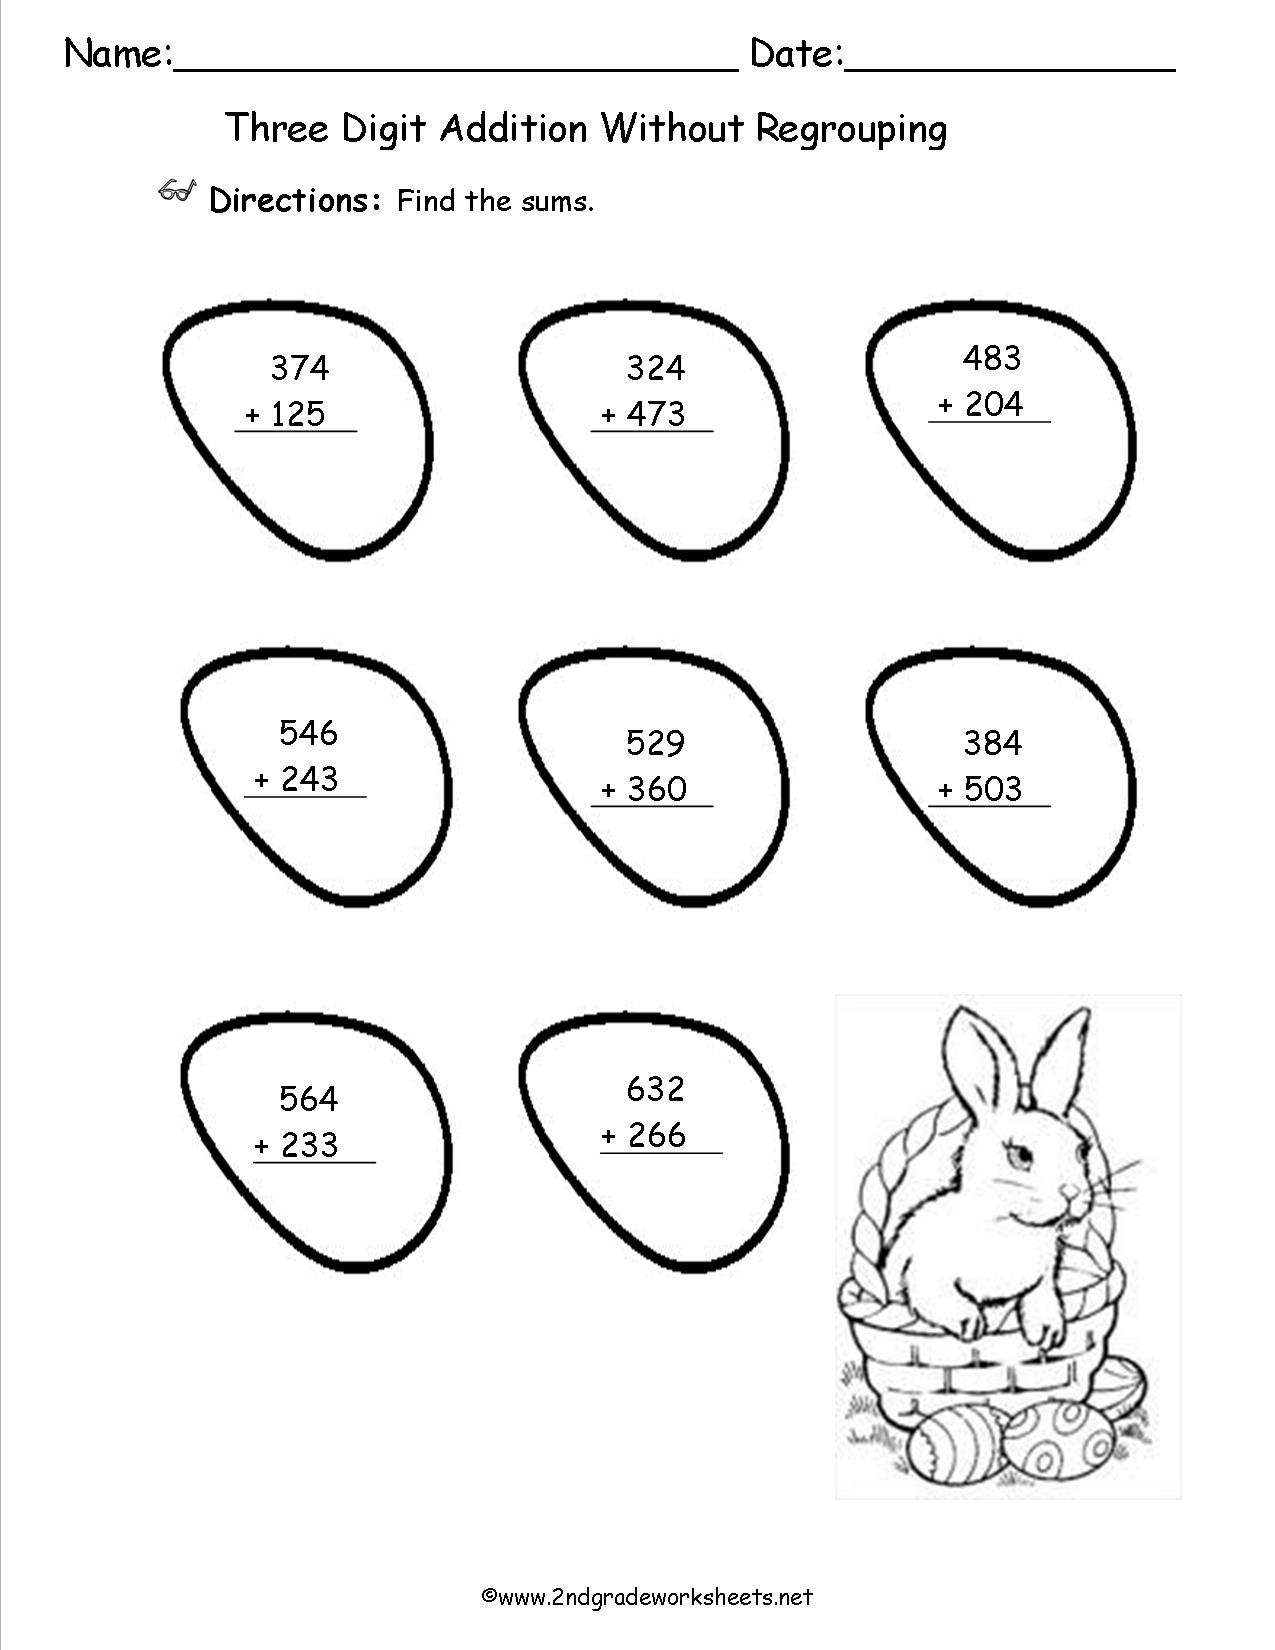 Easter Worksheets And Printouts - Free Printable Easter Worksheets For 3Rd Grade